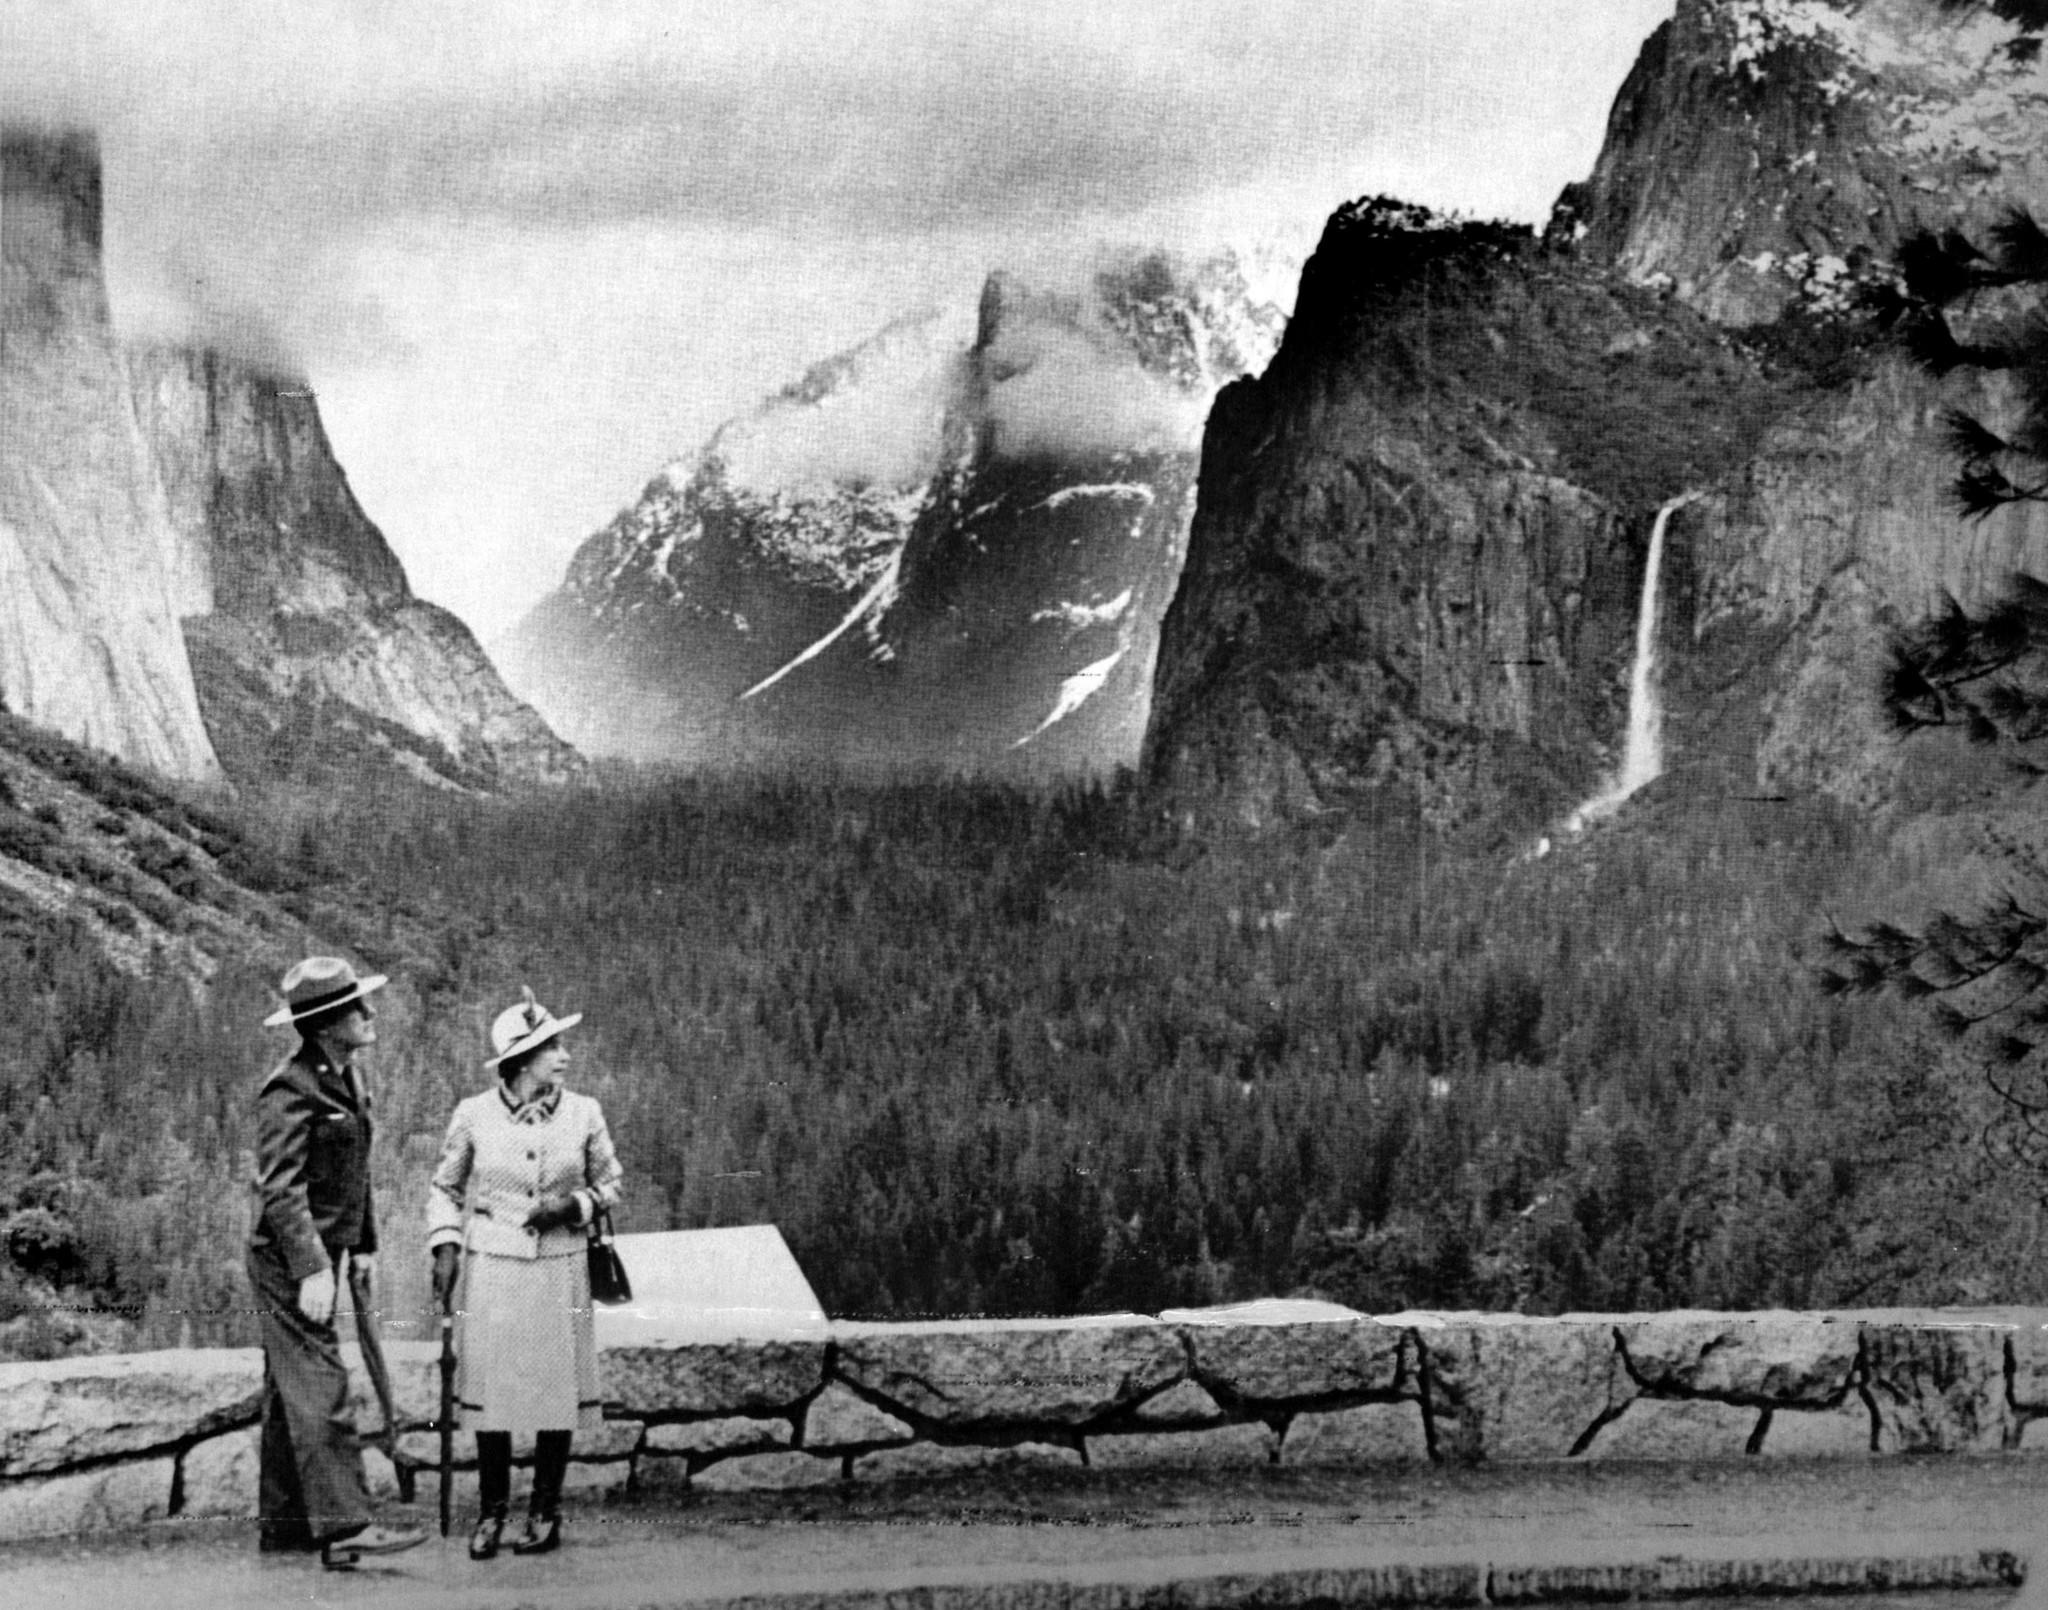 March 5, 1983: Queen Elizabeth II visits Yosemite National Park, accompanied by park superintendent Robert O. Binnewies. This photo was published in the March 6, 1983, Los Angeles Times.